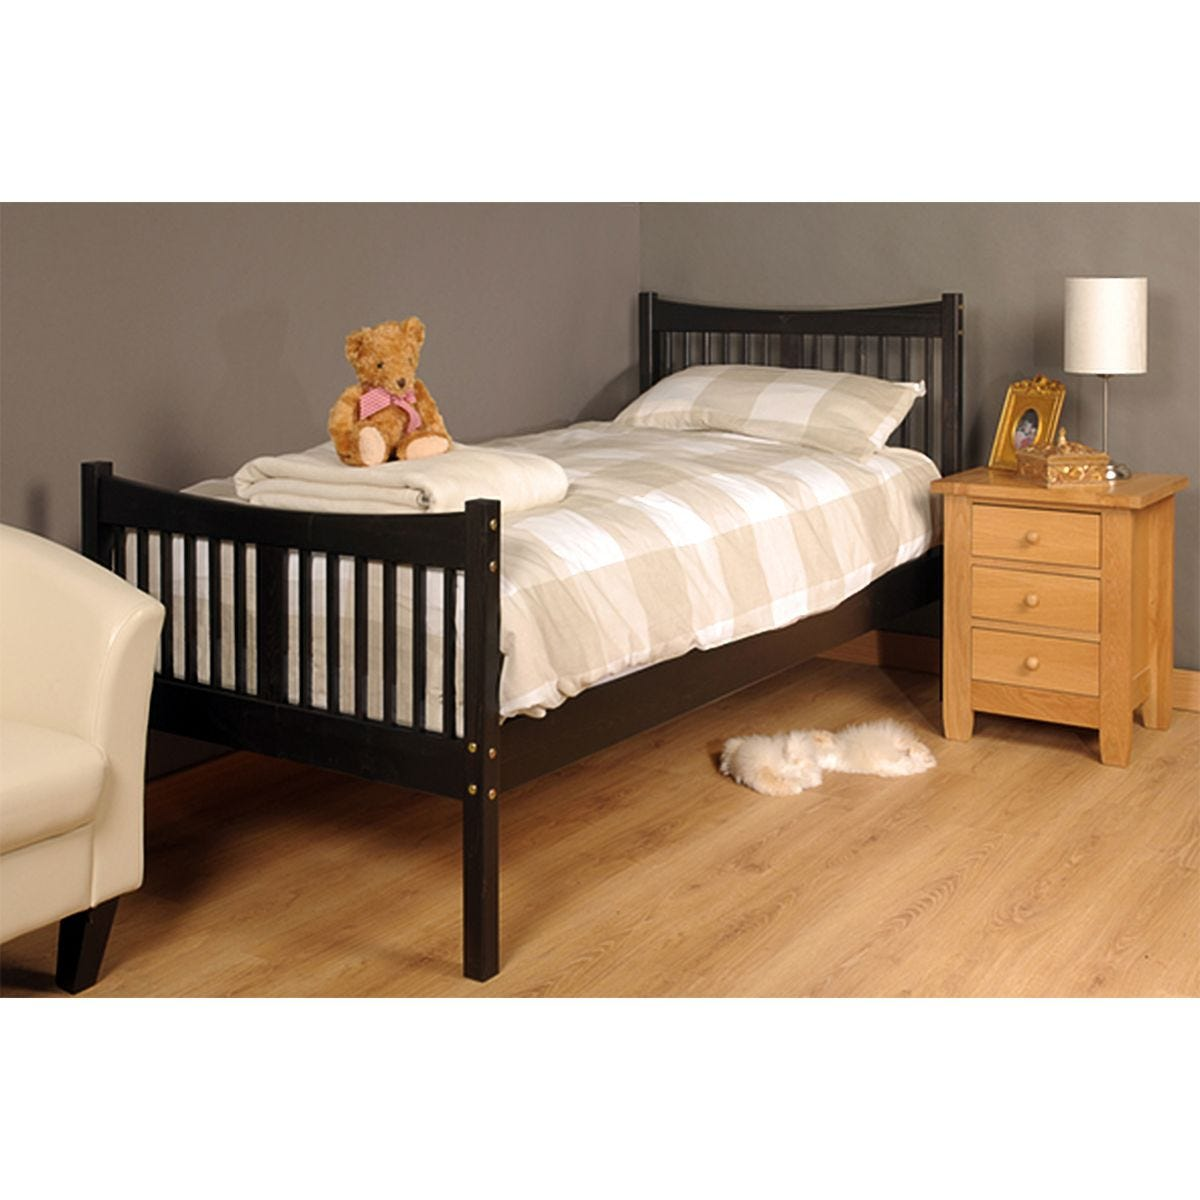 Valmiera Bed Frame - Chocolate